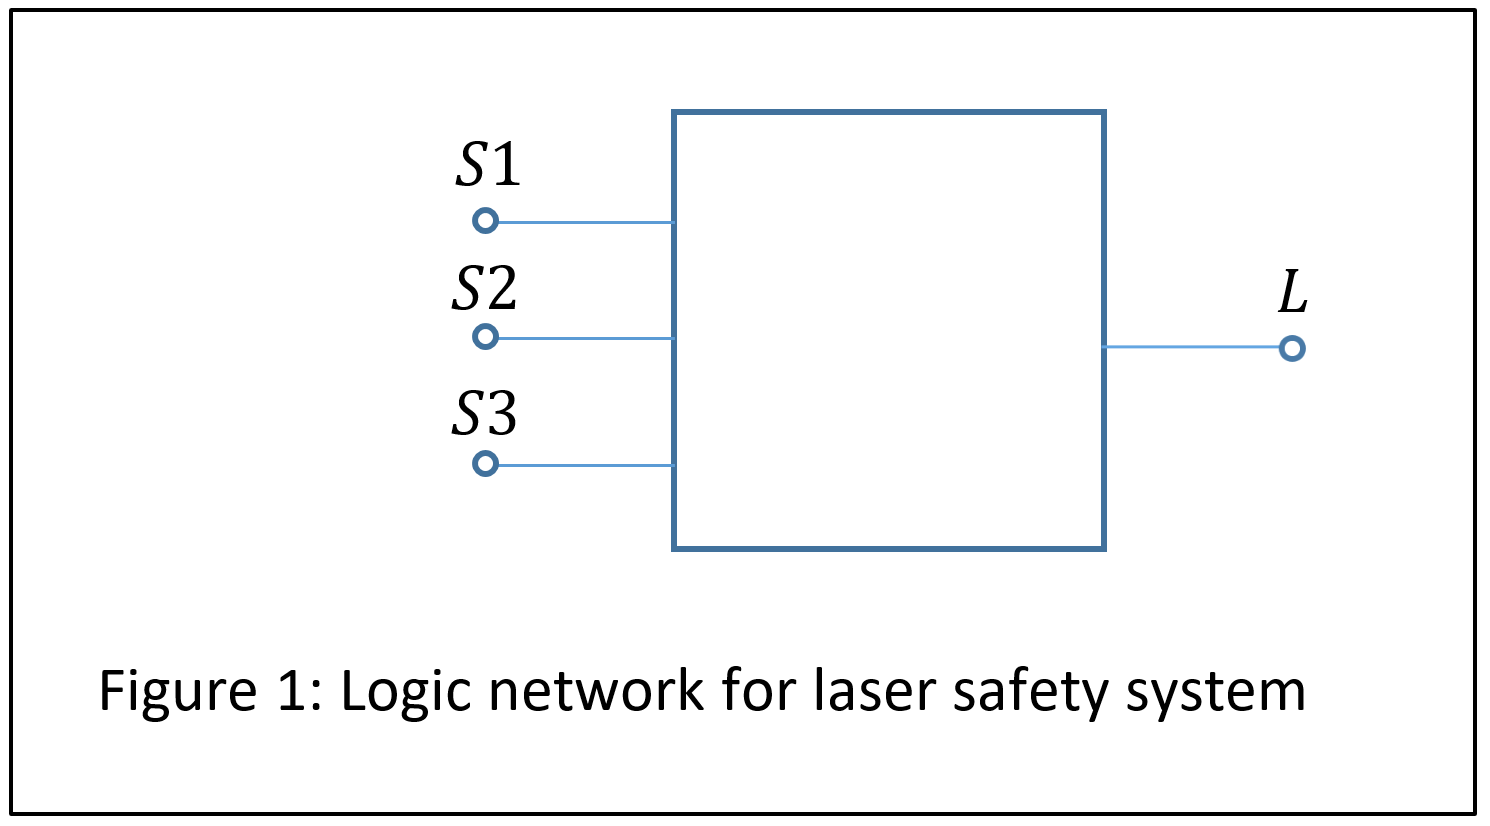 Digital Logic Examples Electrical Engineering D Flip Flop Diagram And Truth Table Figure 1 Network For Laser Safety System Click To Expand